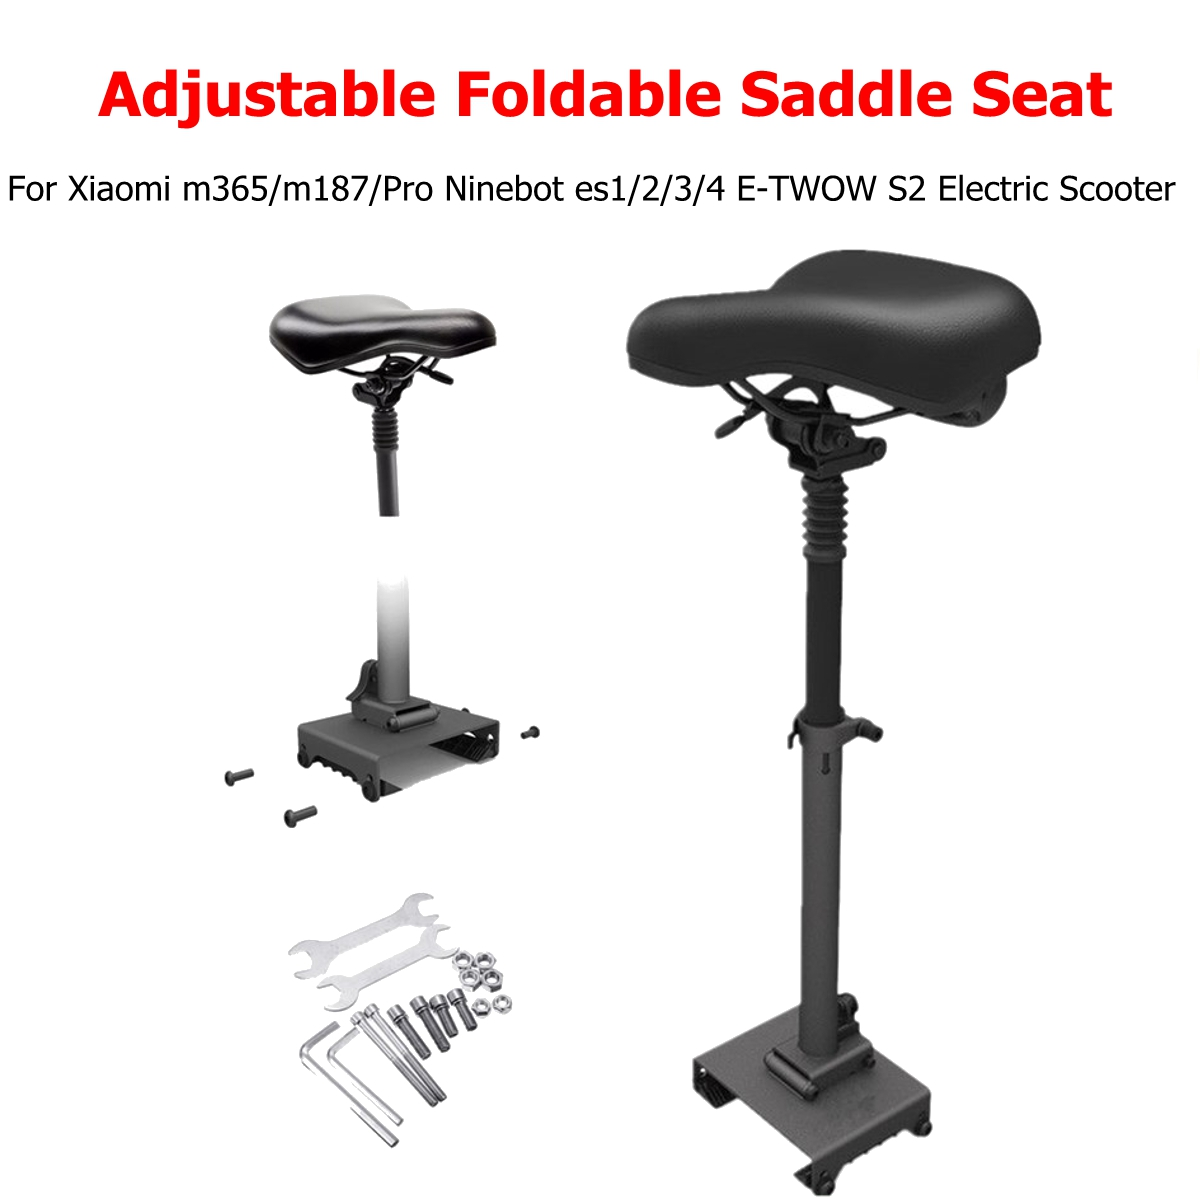 Bottom Removable Seat Saddle Electric Scooter Adjustable For SeatXiaomi M365 Scooter  With Shock Absorbing Install Scooter Seat